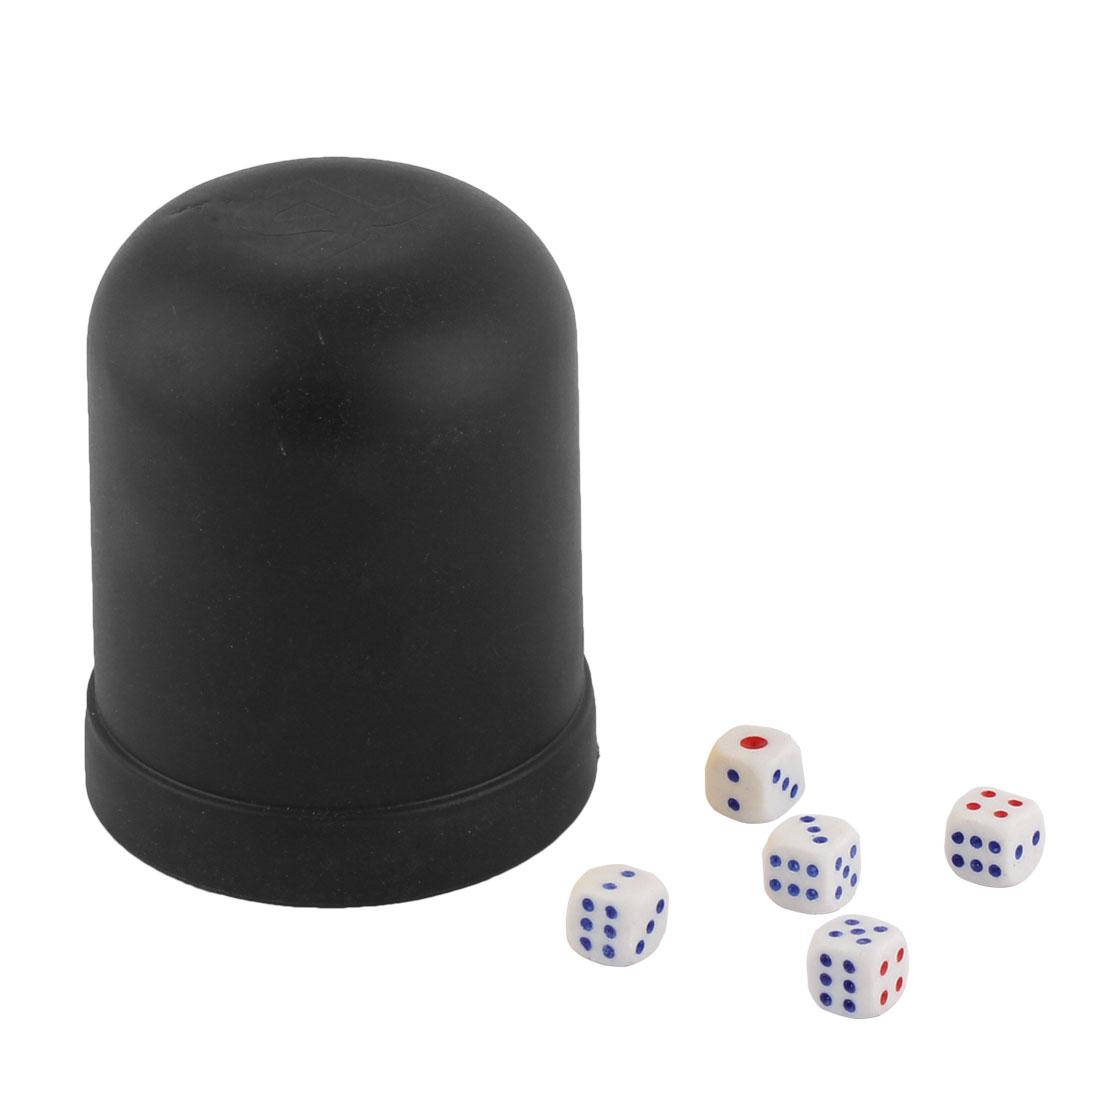 Party Club KTV Casino Guessing Gaming Gambling Shaker Case Bet Stake Dice Cup